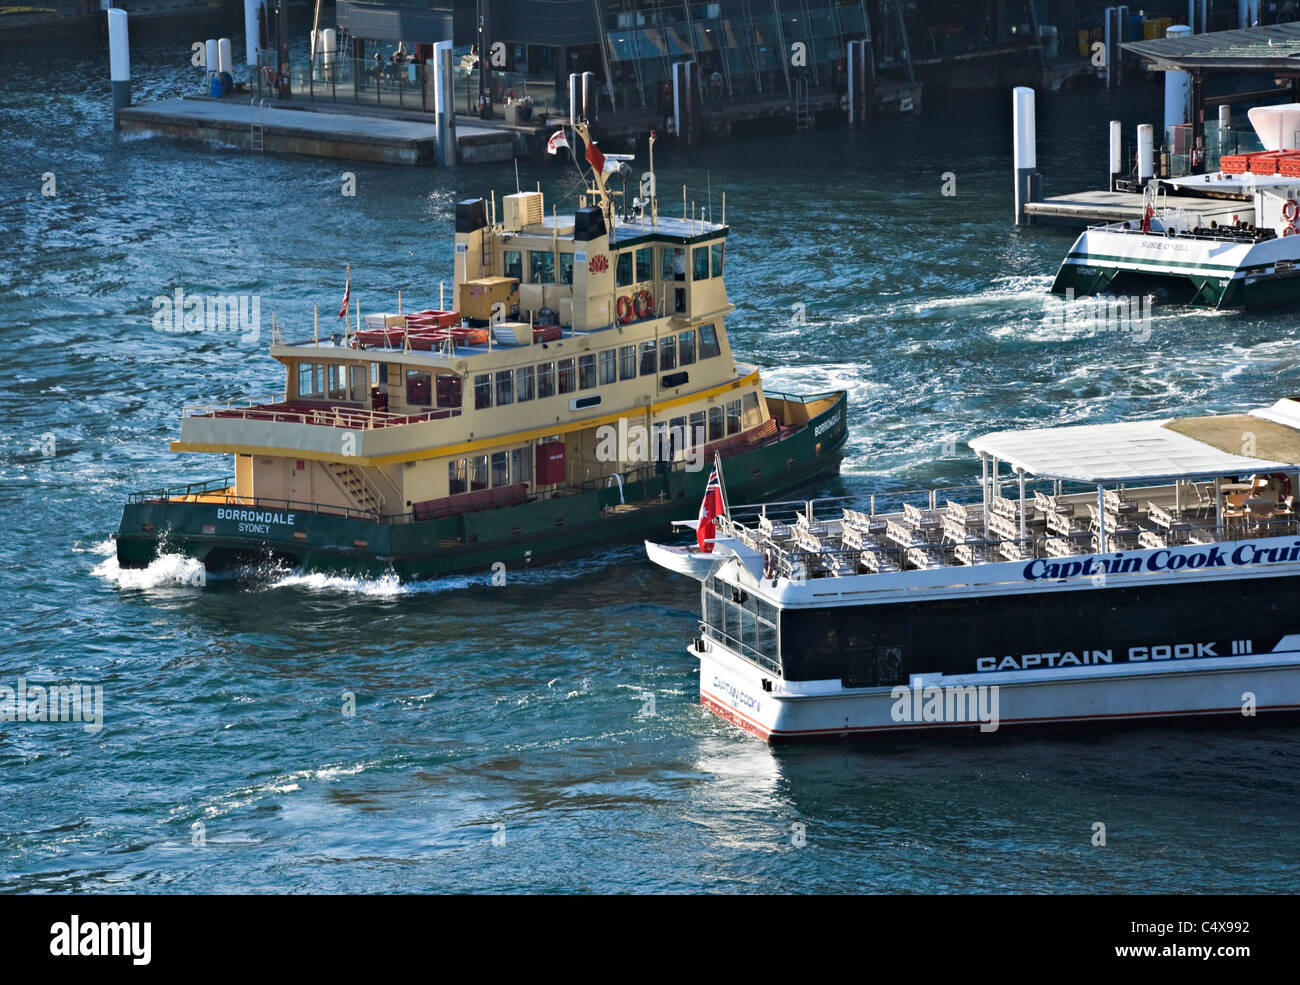 Ferry Boats Come and Go on Regular Schedules From Circular Quay Sydney Harbour to Outlying Districts NSW Australia Stock Photo